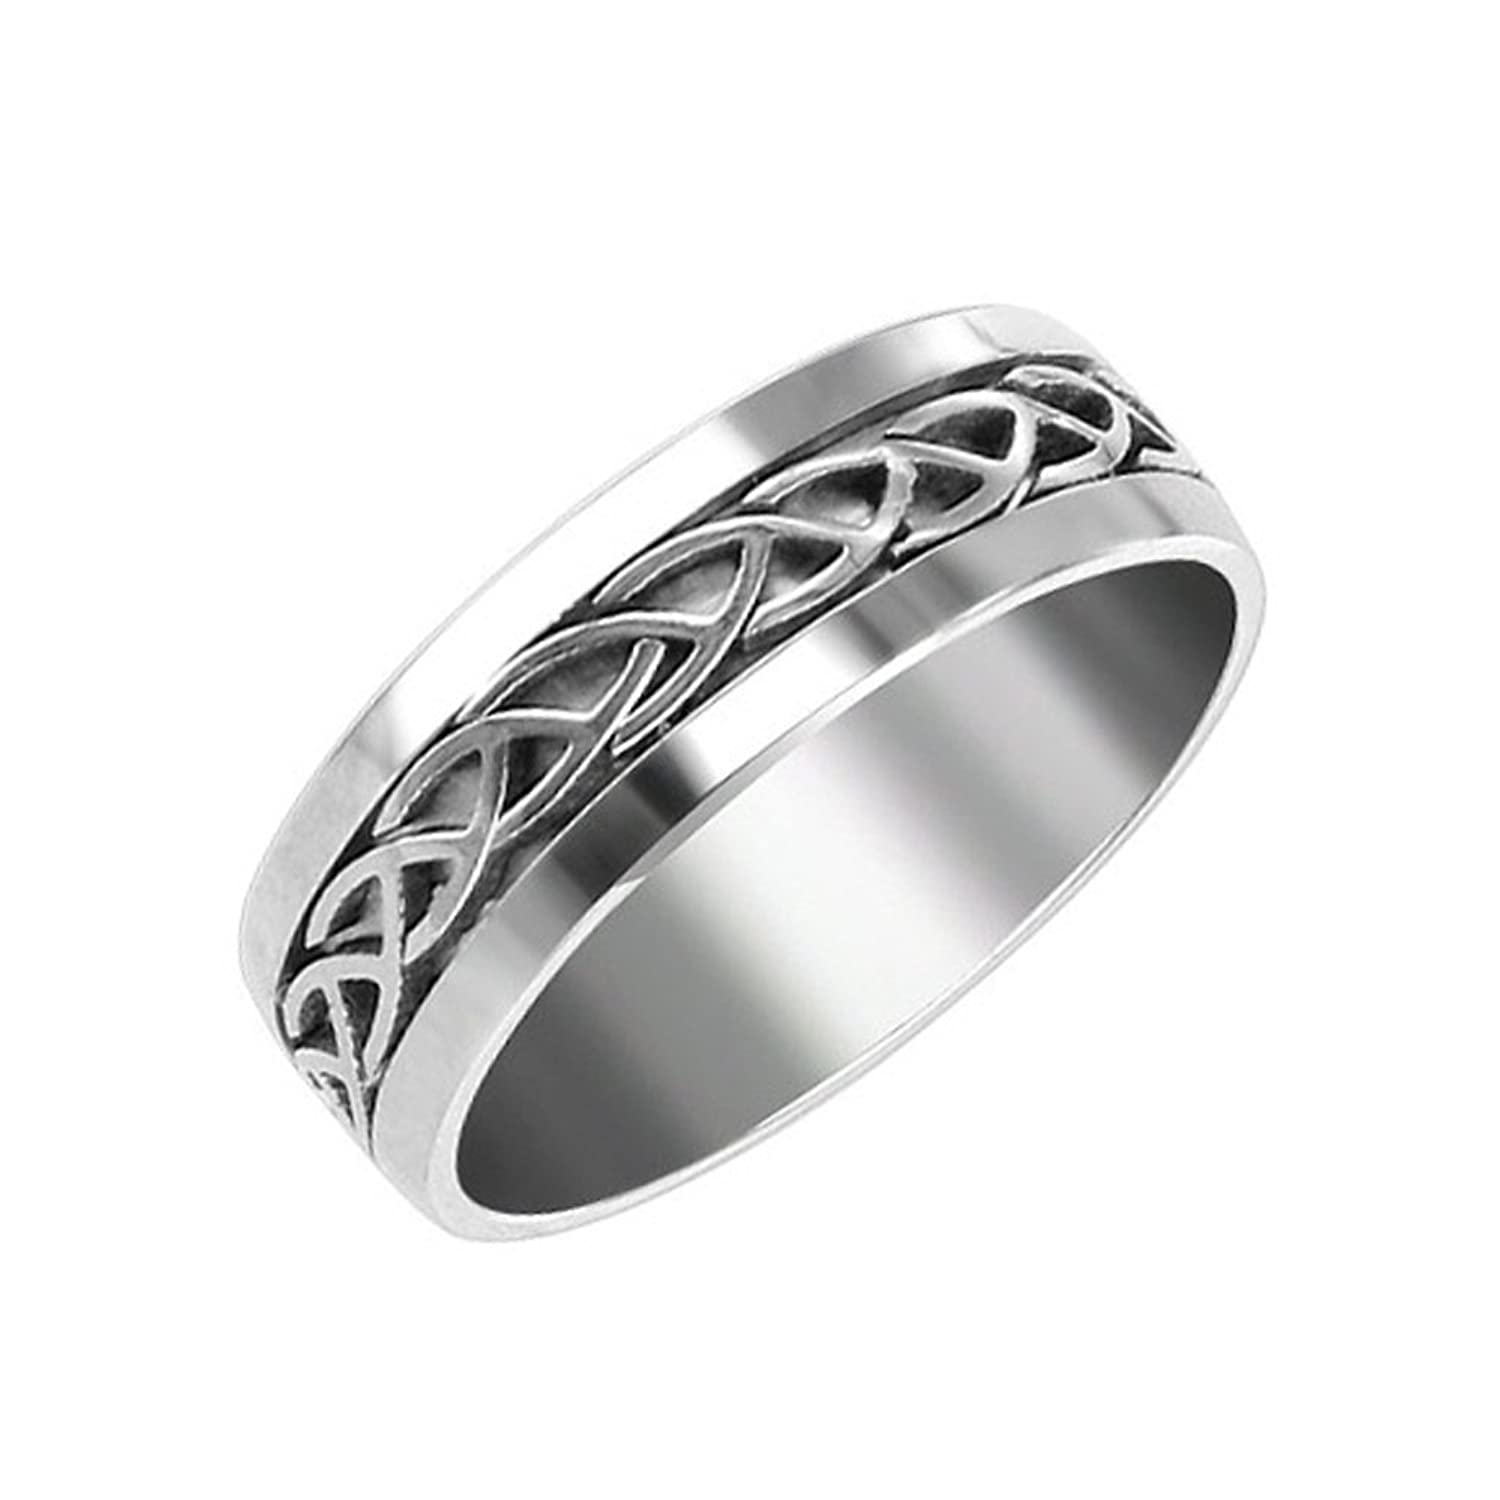 awesome gaelic bands gallery sets rings picture engagement celtic matching photography ring alsayegh wedding of beautiful